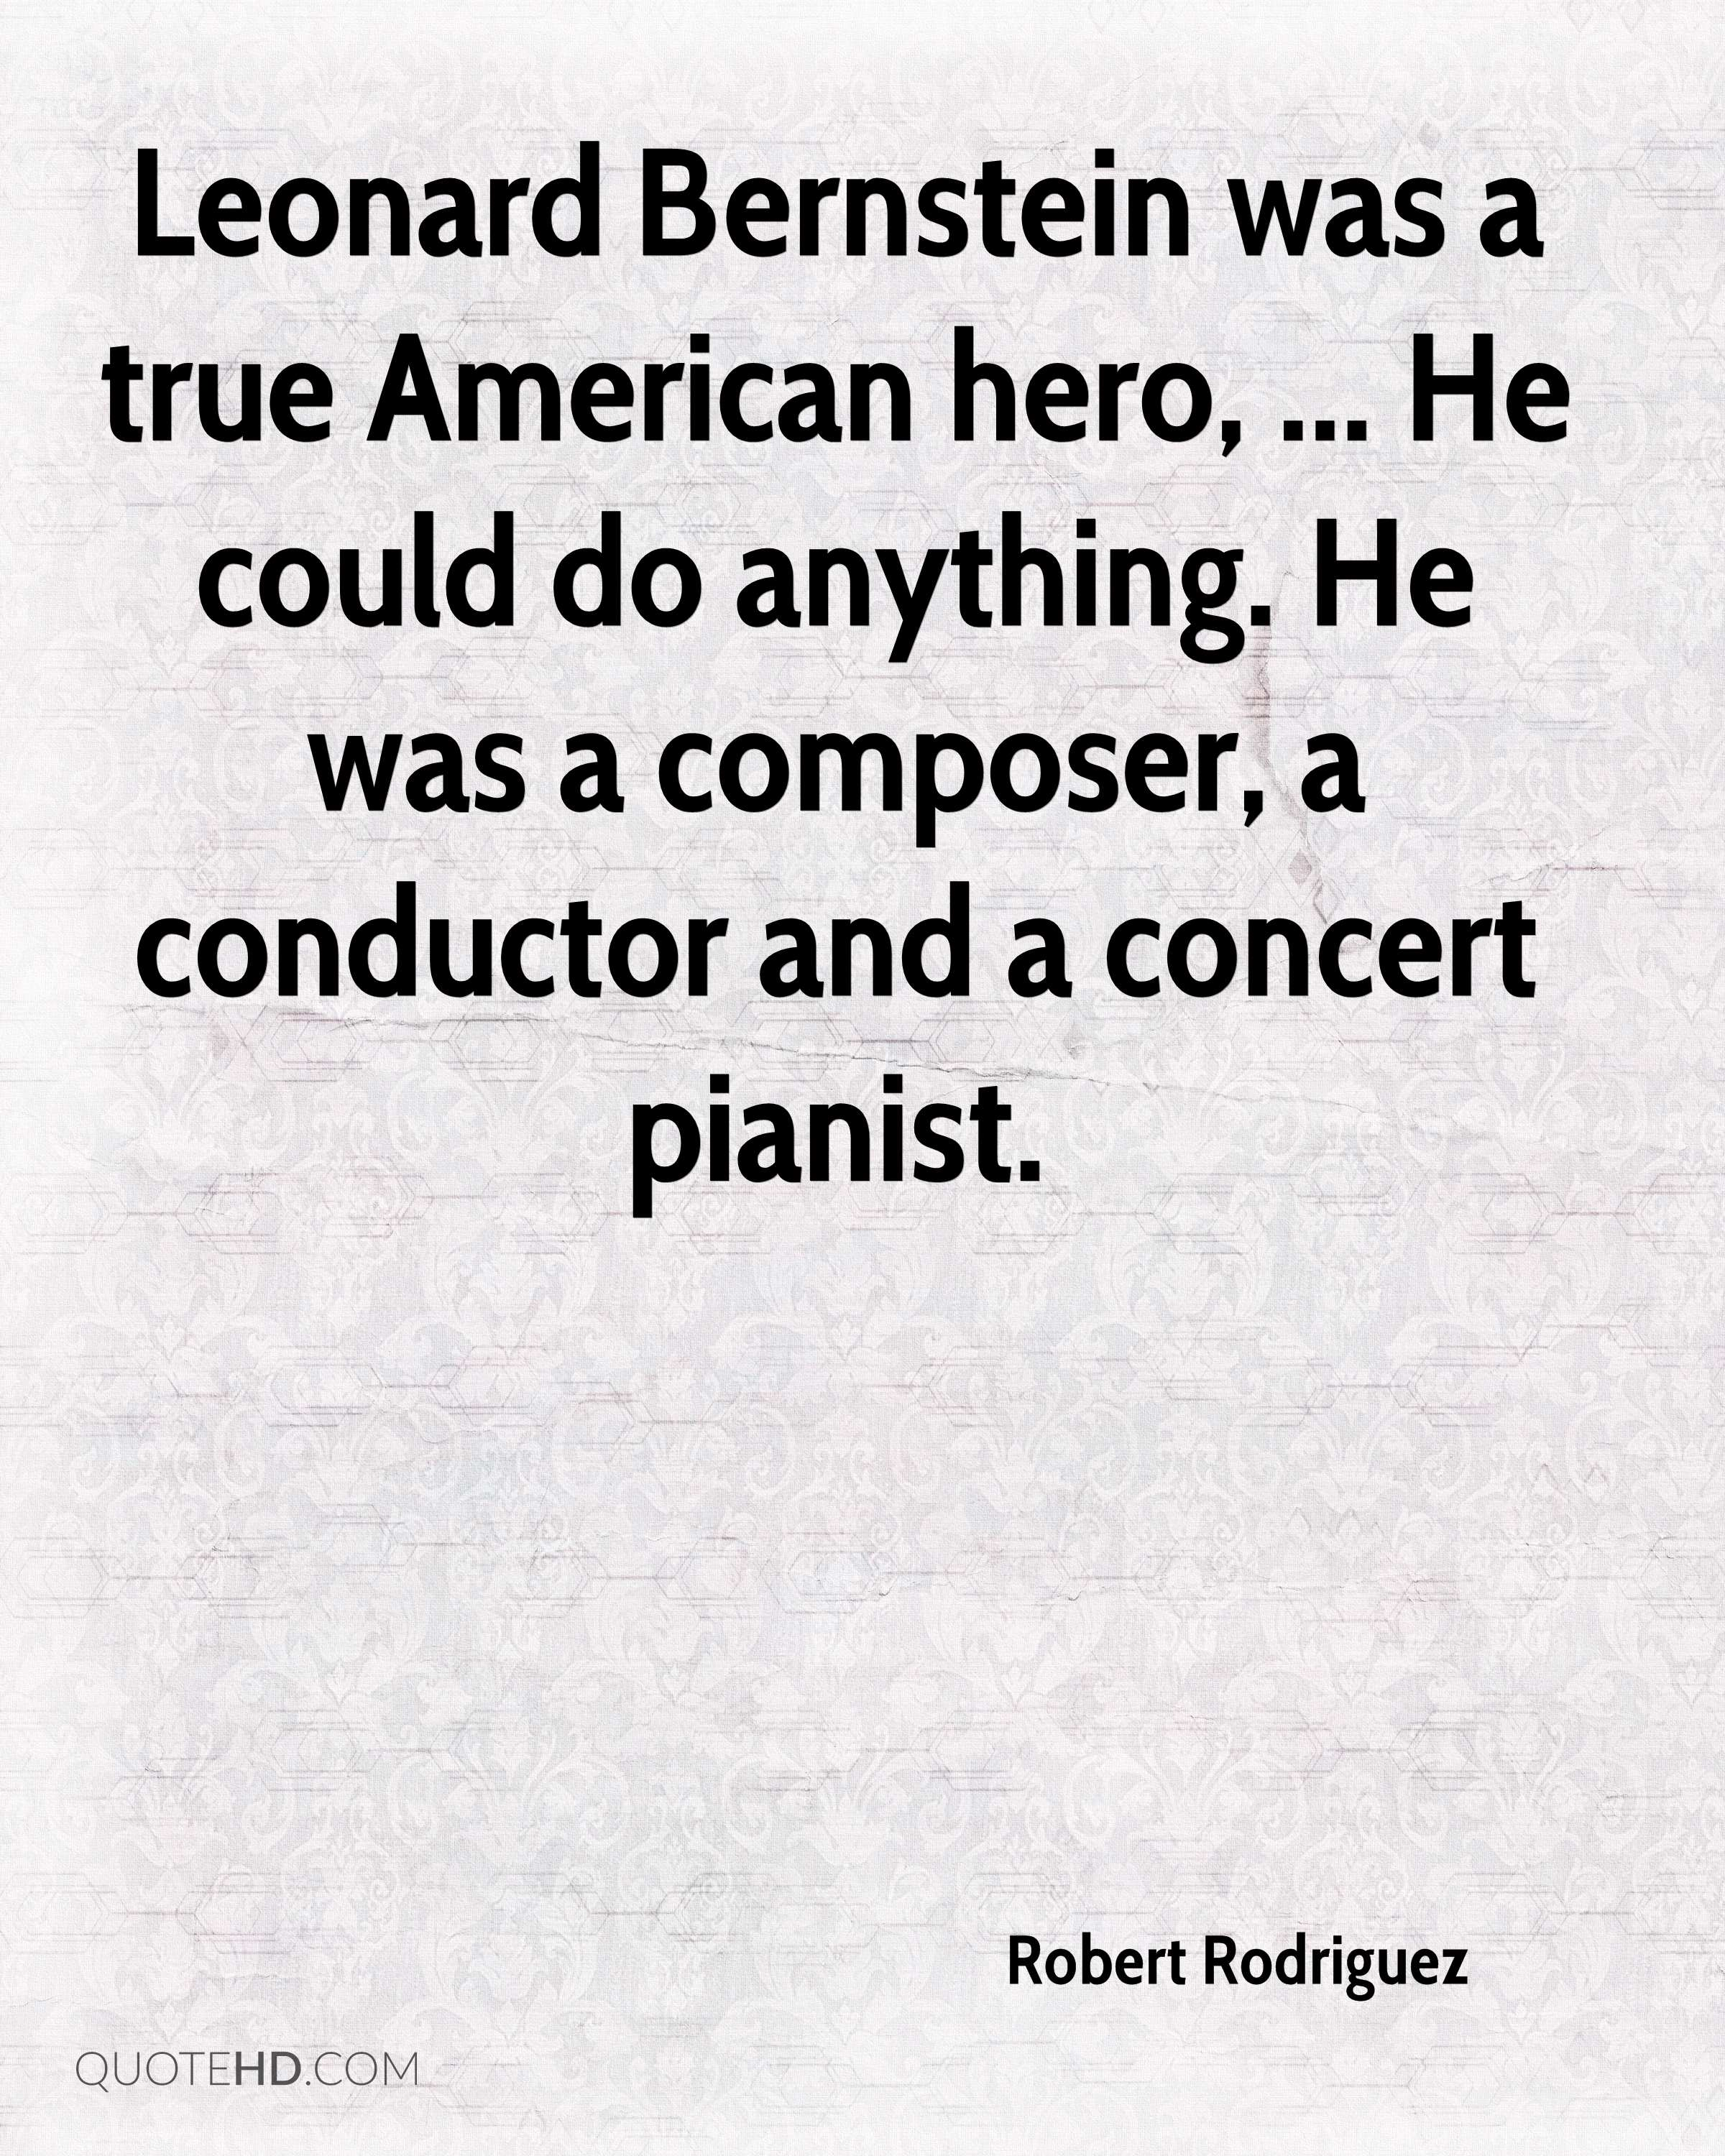 Leonard Bernstein was a true American hero, ... He could do anything. He was a composer, a conductor and a concert pianist.